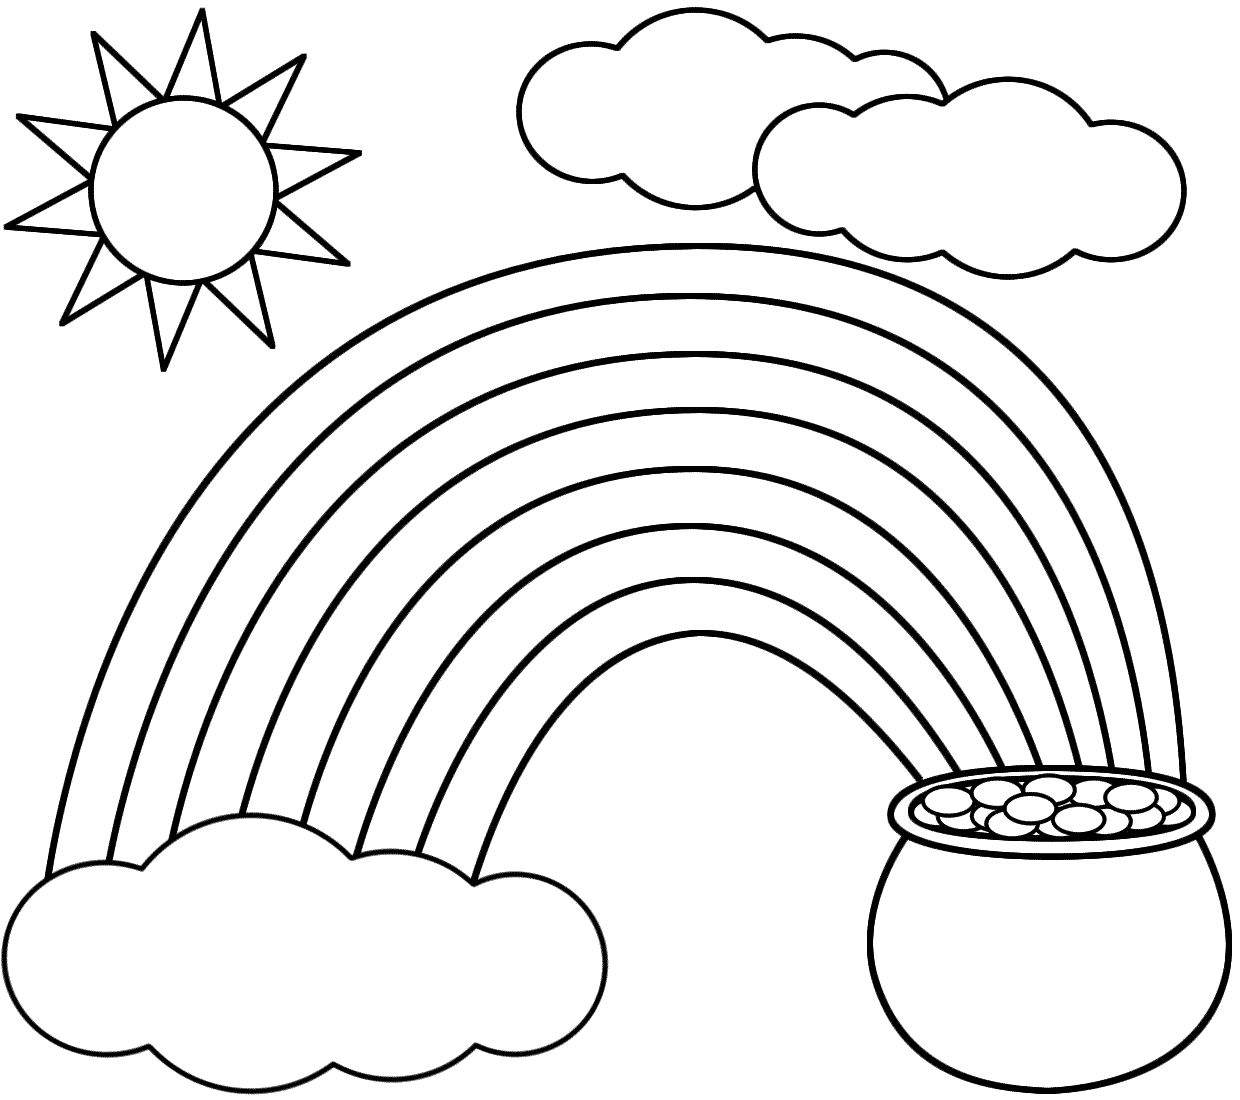 Rainbow Coloring Page With Color Words